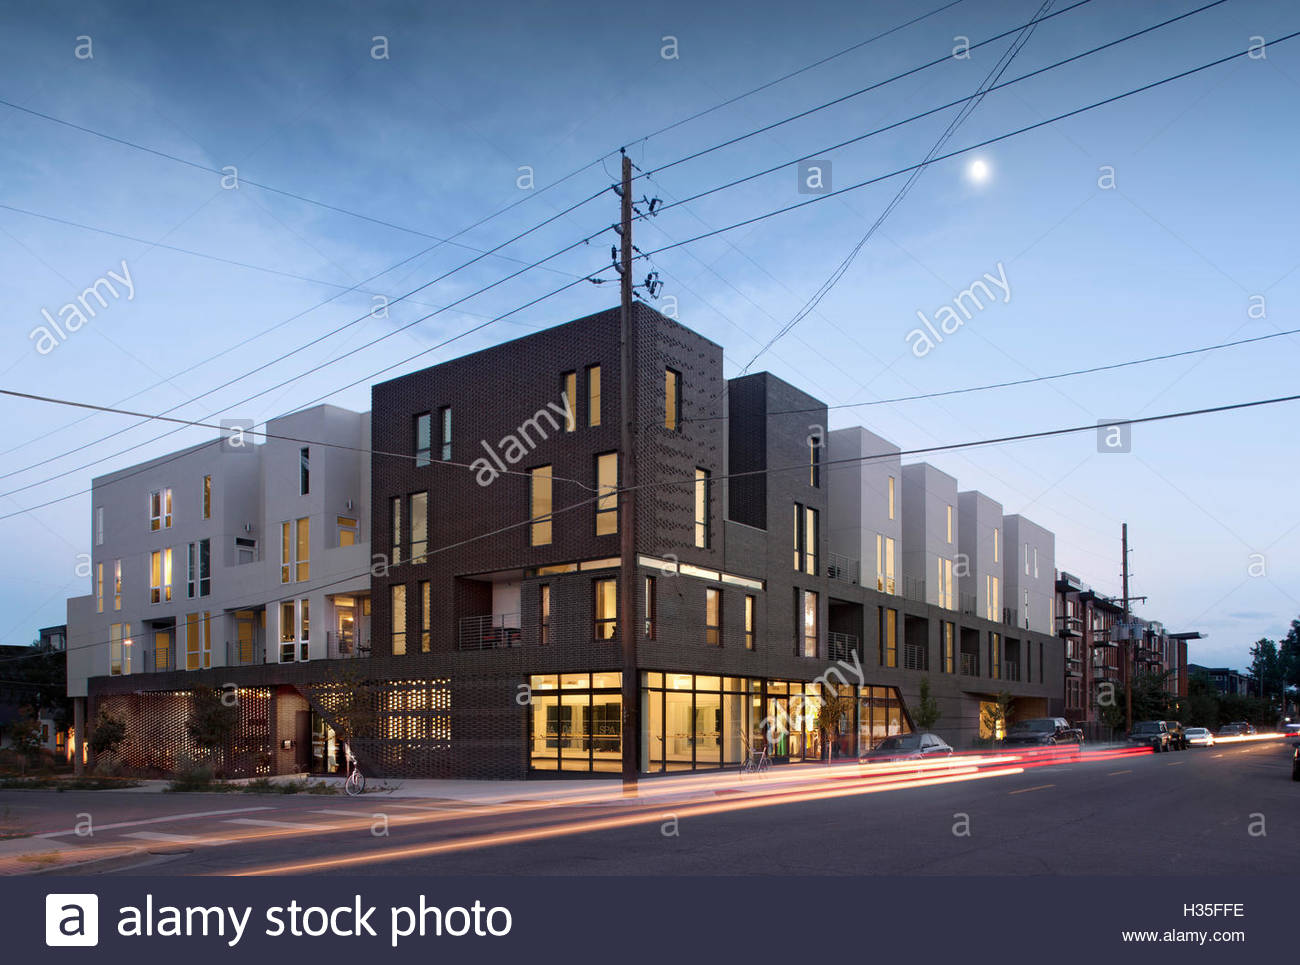 Exterior view, Meridian 105 Tejon Apartments, Denver, Colorado, USA. - Stock Image